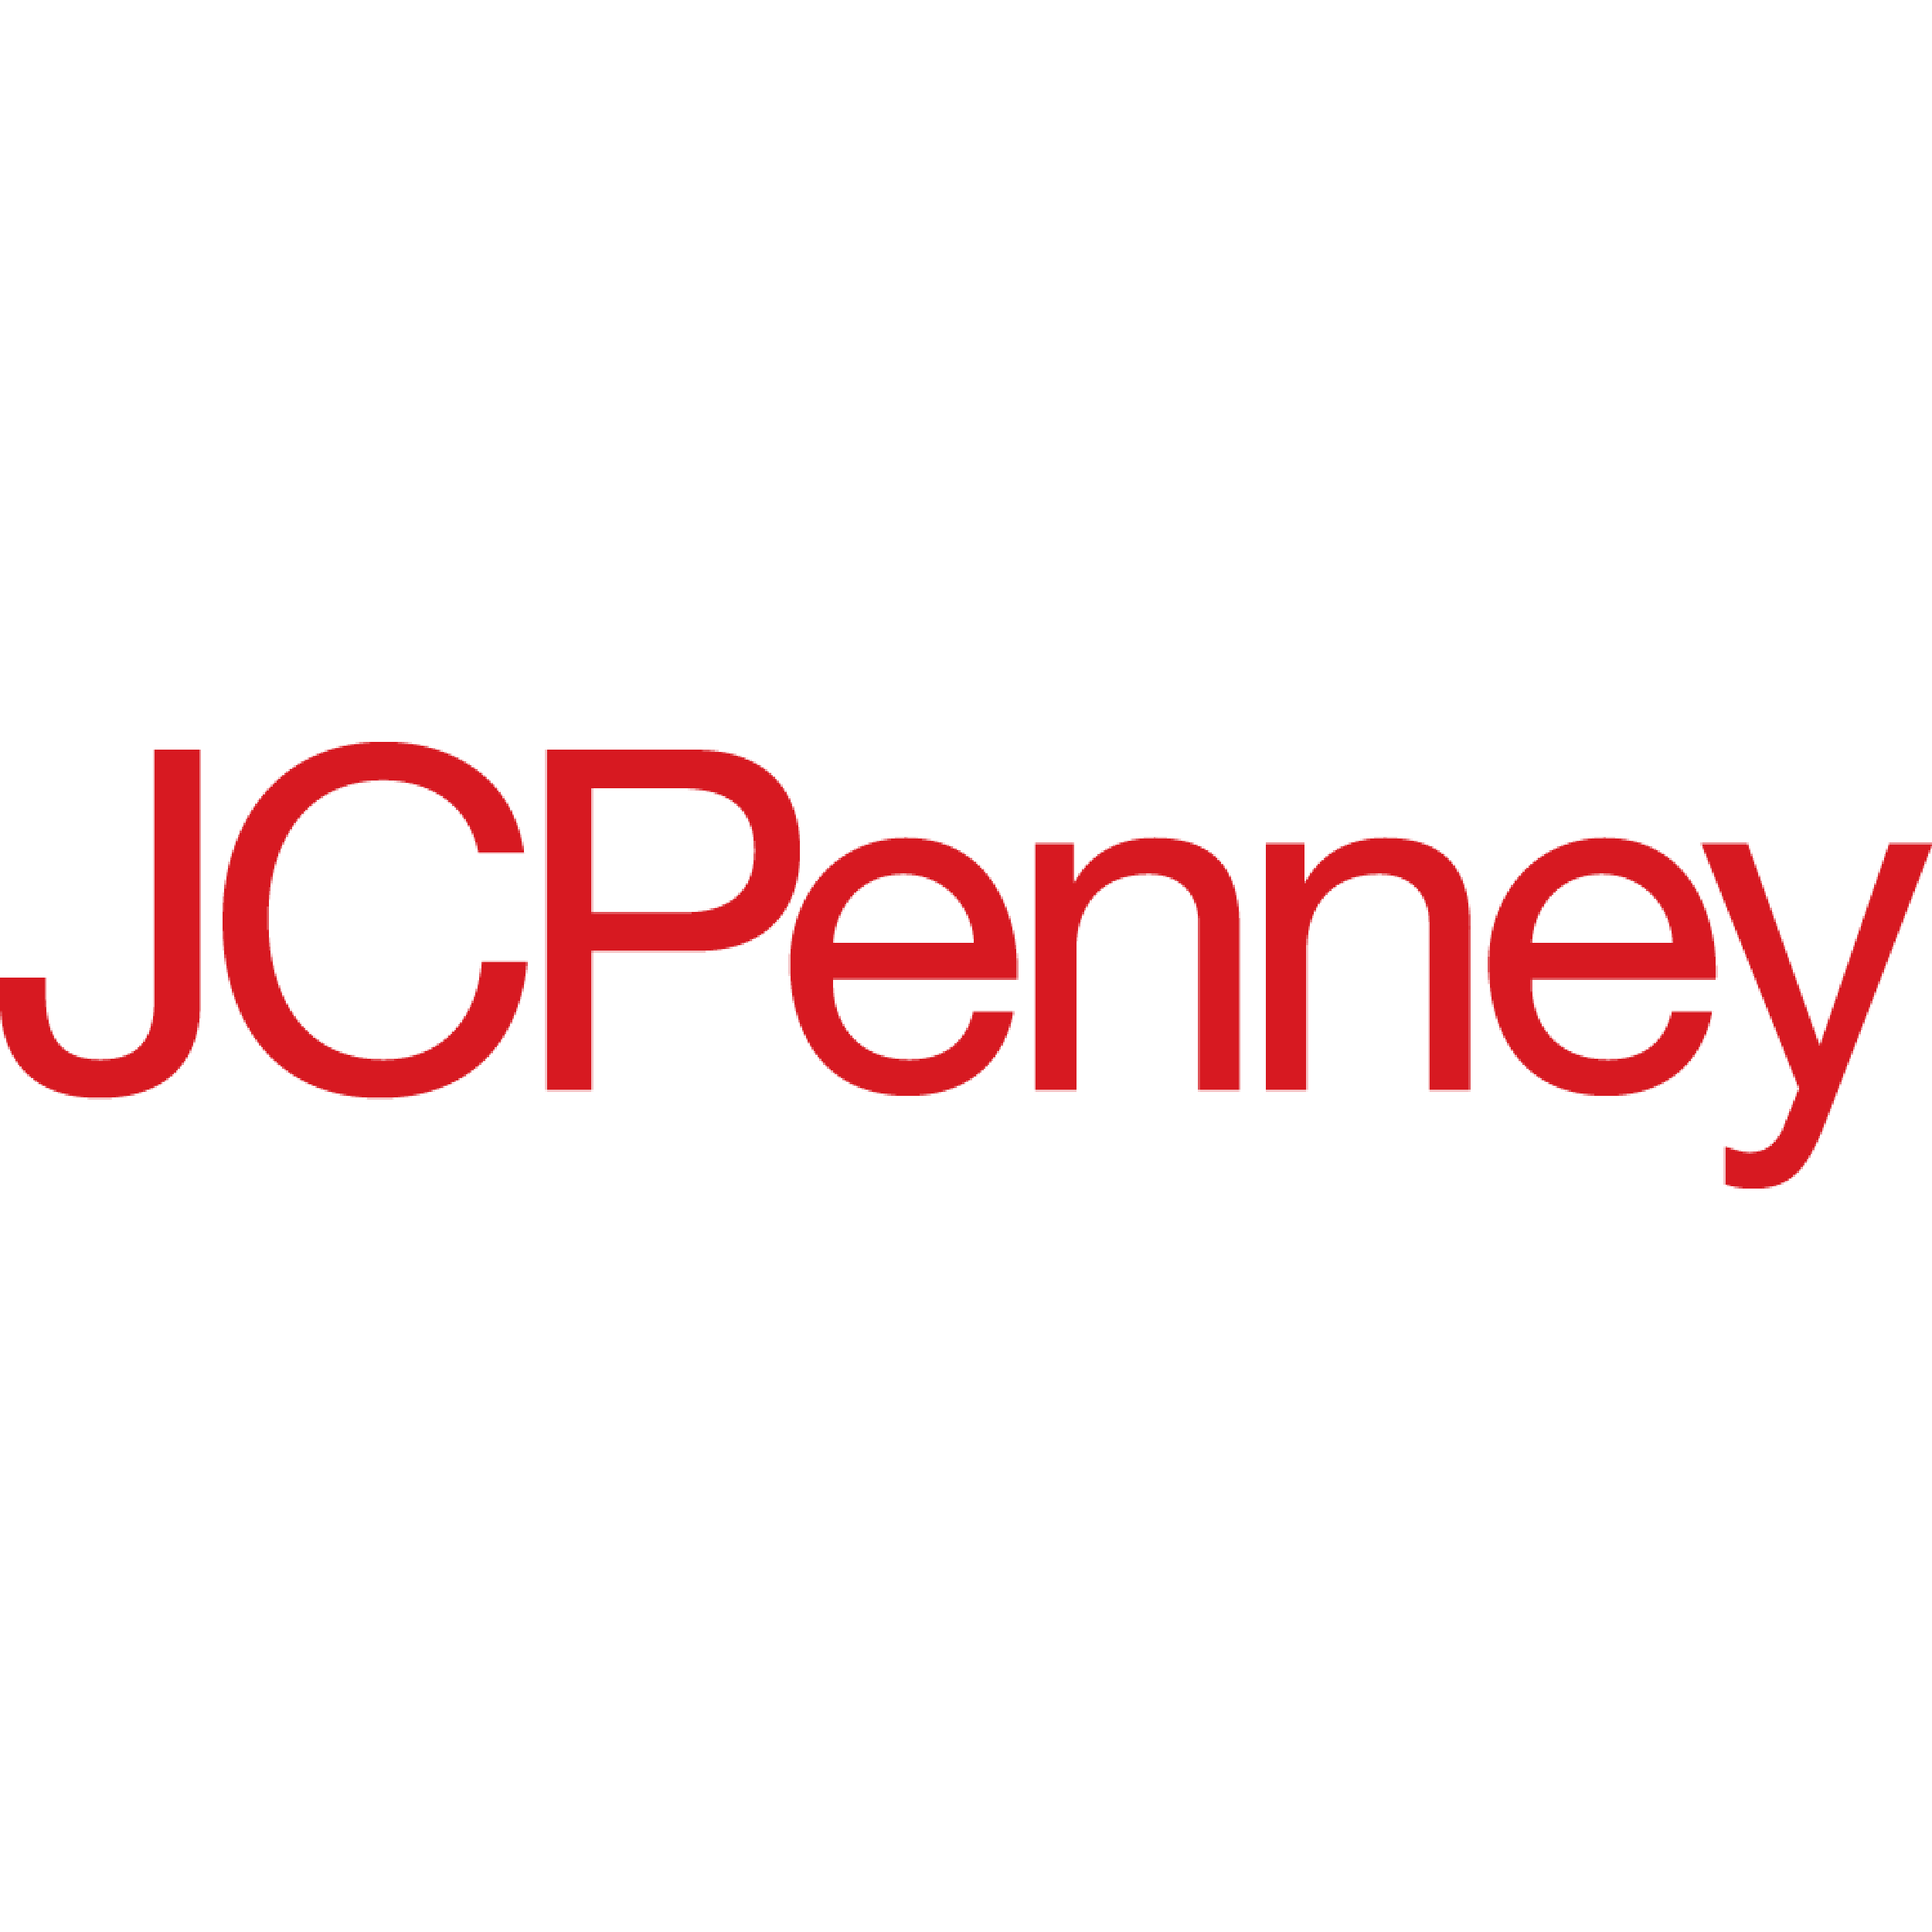 JCPenney - Piqua, OH - Department Stores